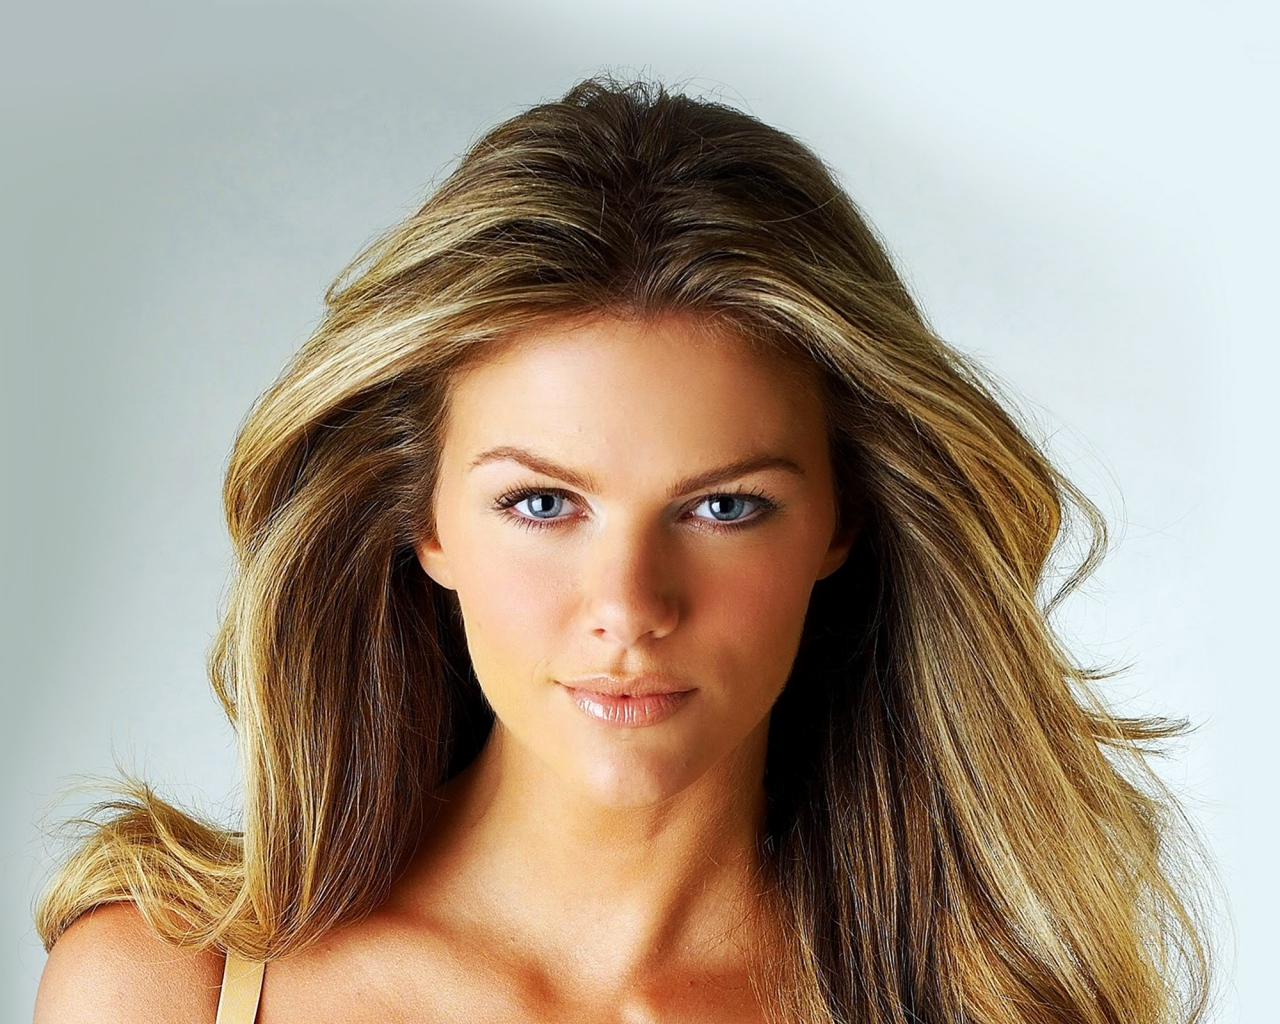 brooklyn_decker_actress_blonde_face_make_up_110098_1280x1024